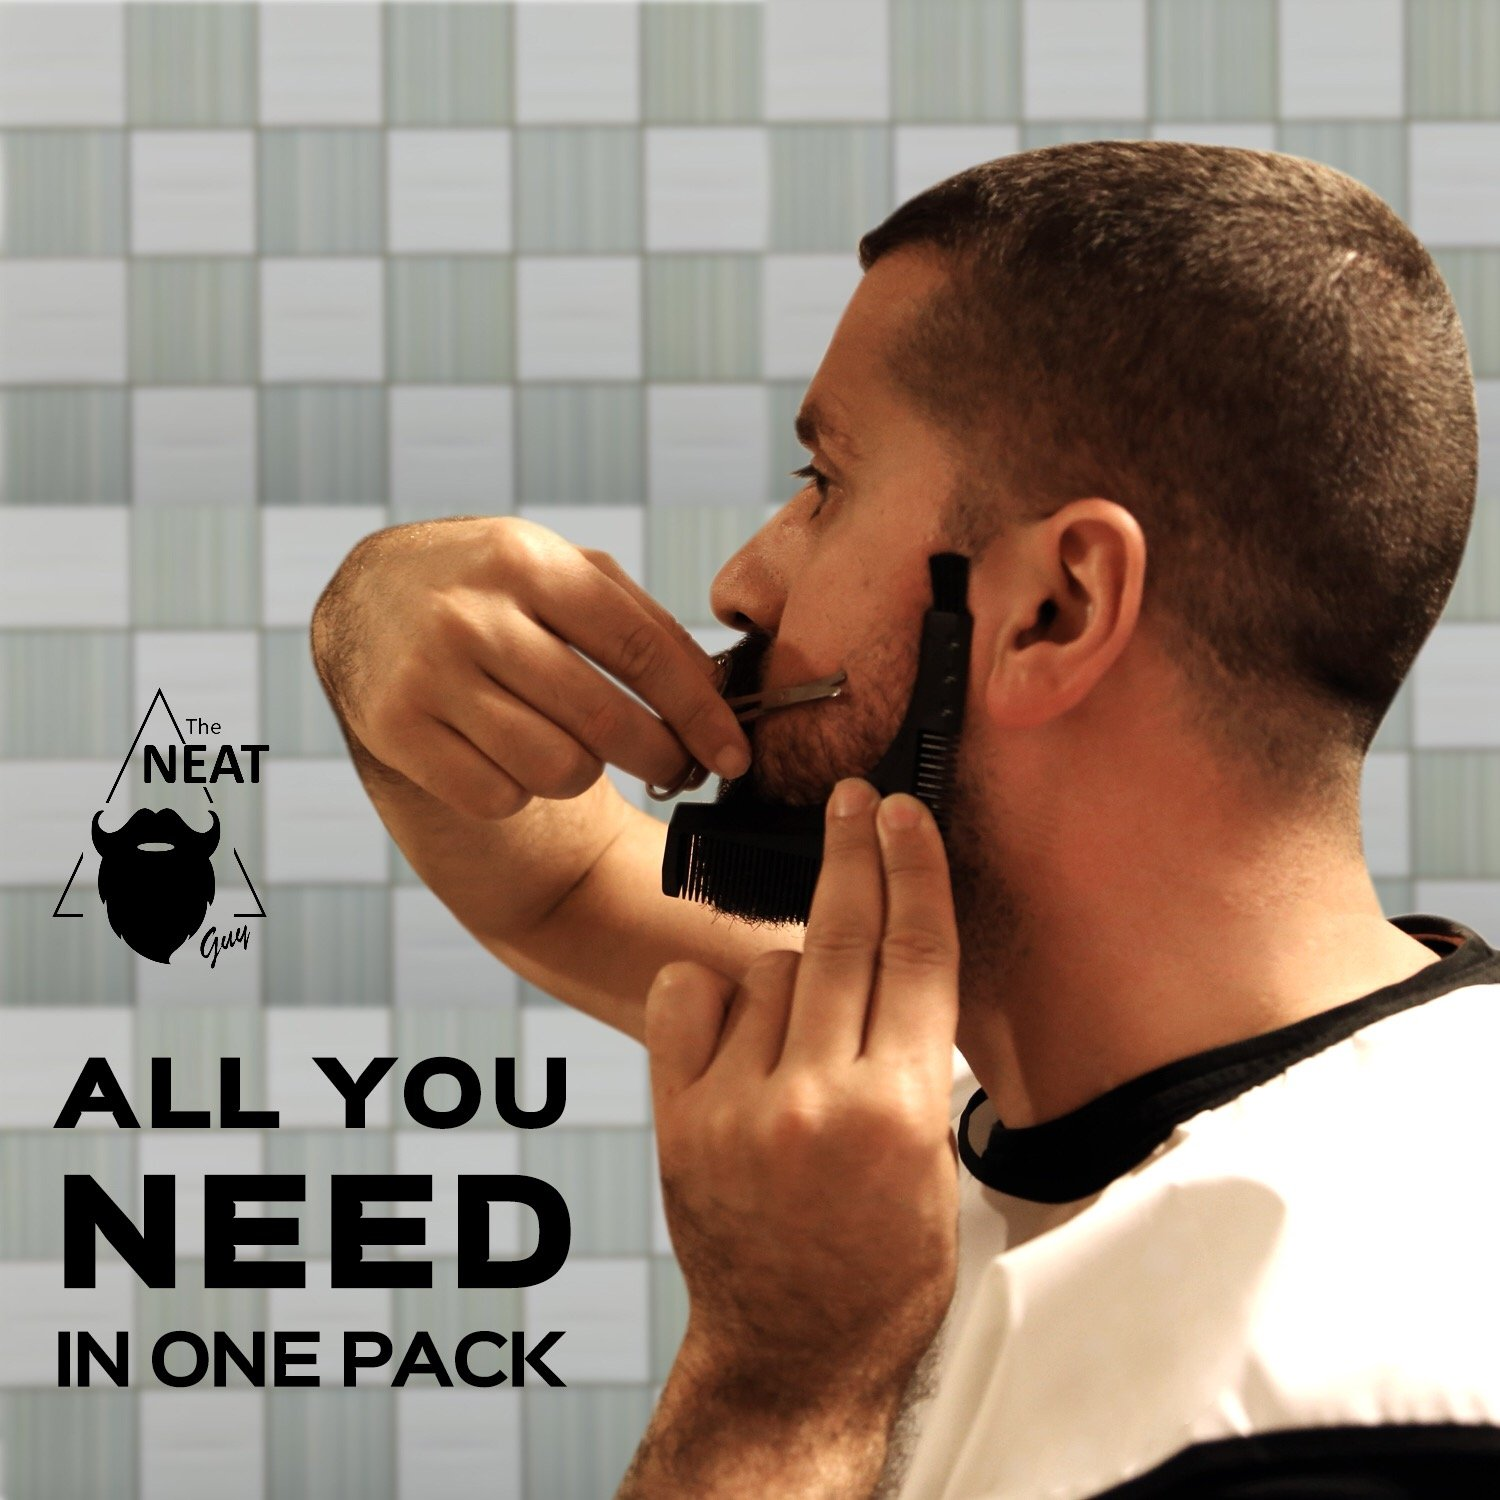 The Neat Guy 6-PACK Beard Kit with Beard Apron/Bib for Mess-Free Shaving + Shaping Tool + Comb + Scissor + Bag, All you Need for a Good, Clean Shave, The Perfect Gift by The Neat Guy (Image #3)